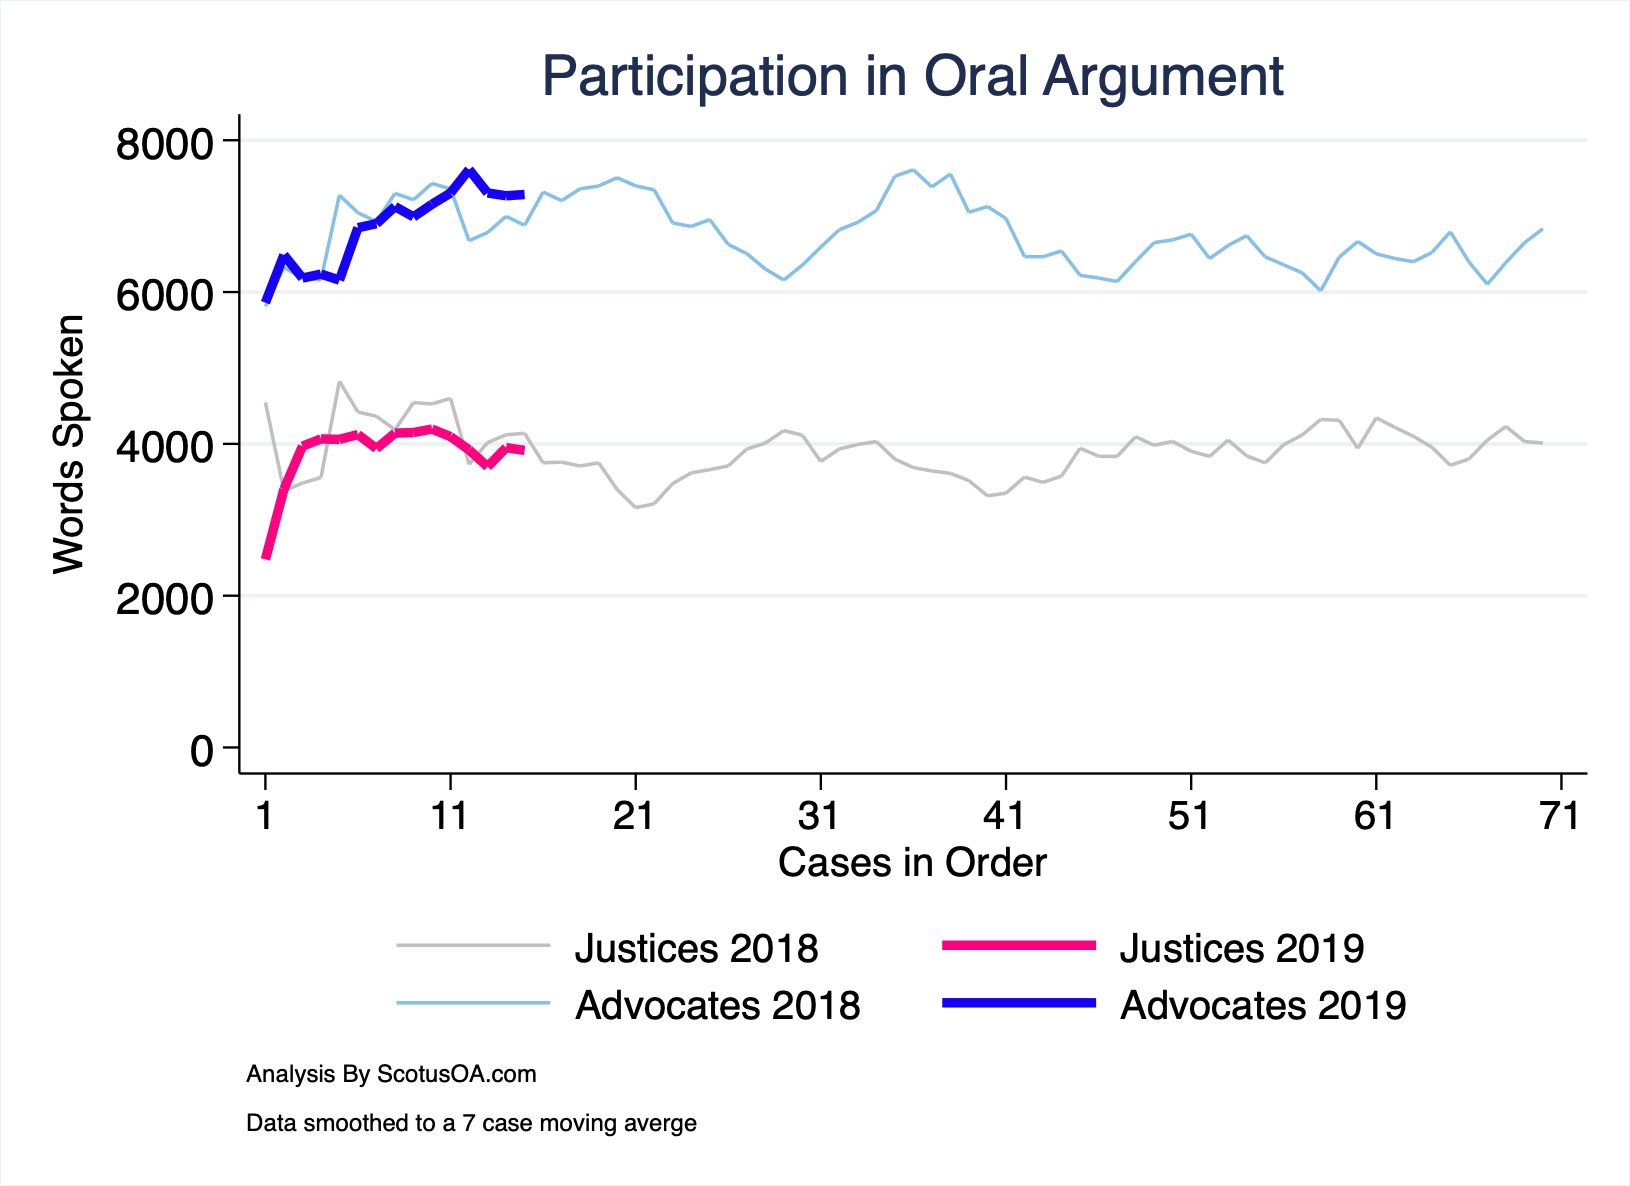 A comparison of words spoken at oral argument in the 2018 and 2019 Terms by the Advocates and the Justices